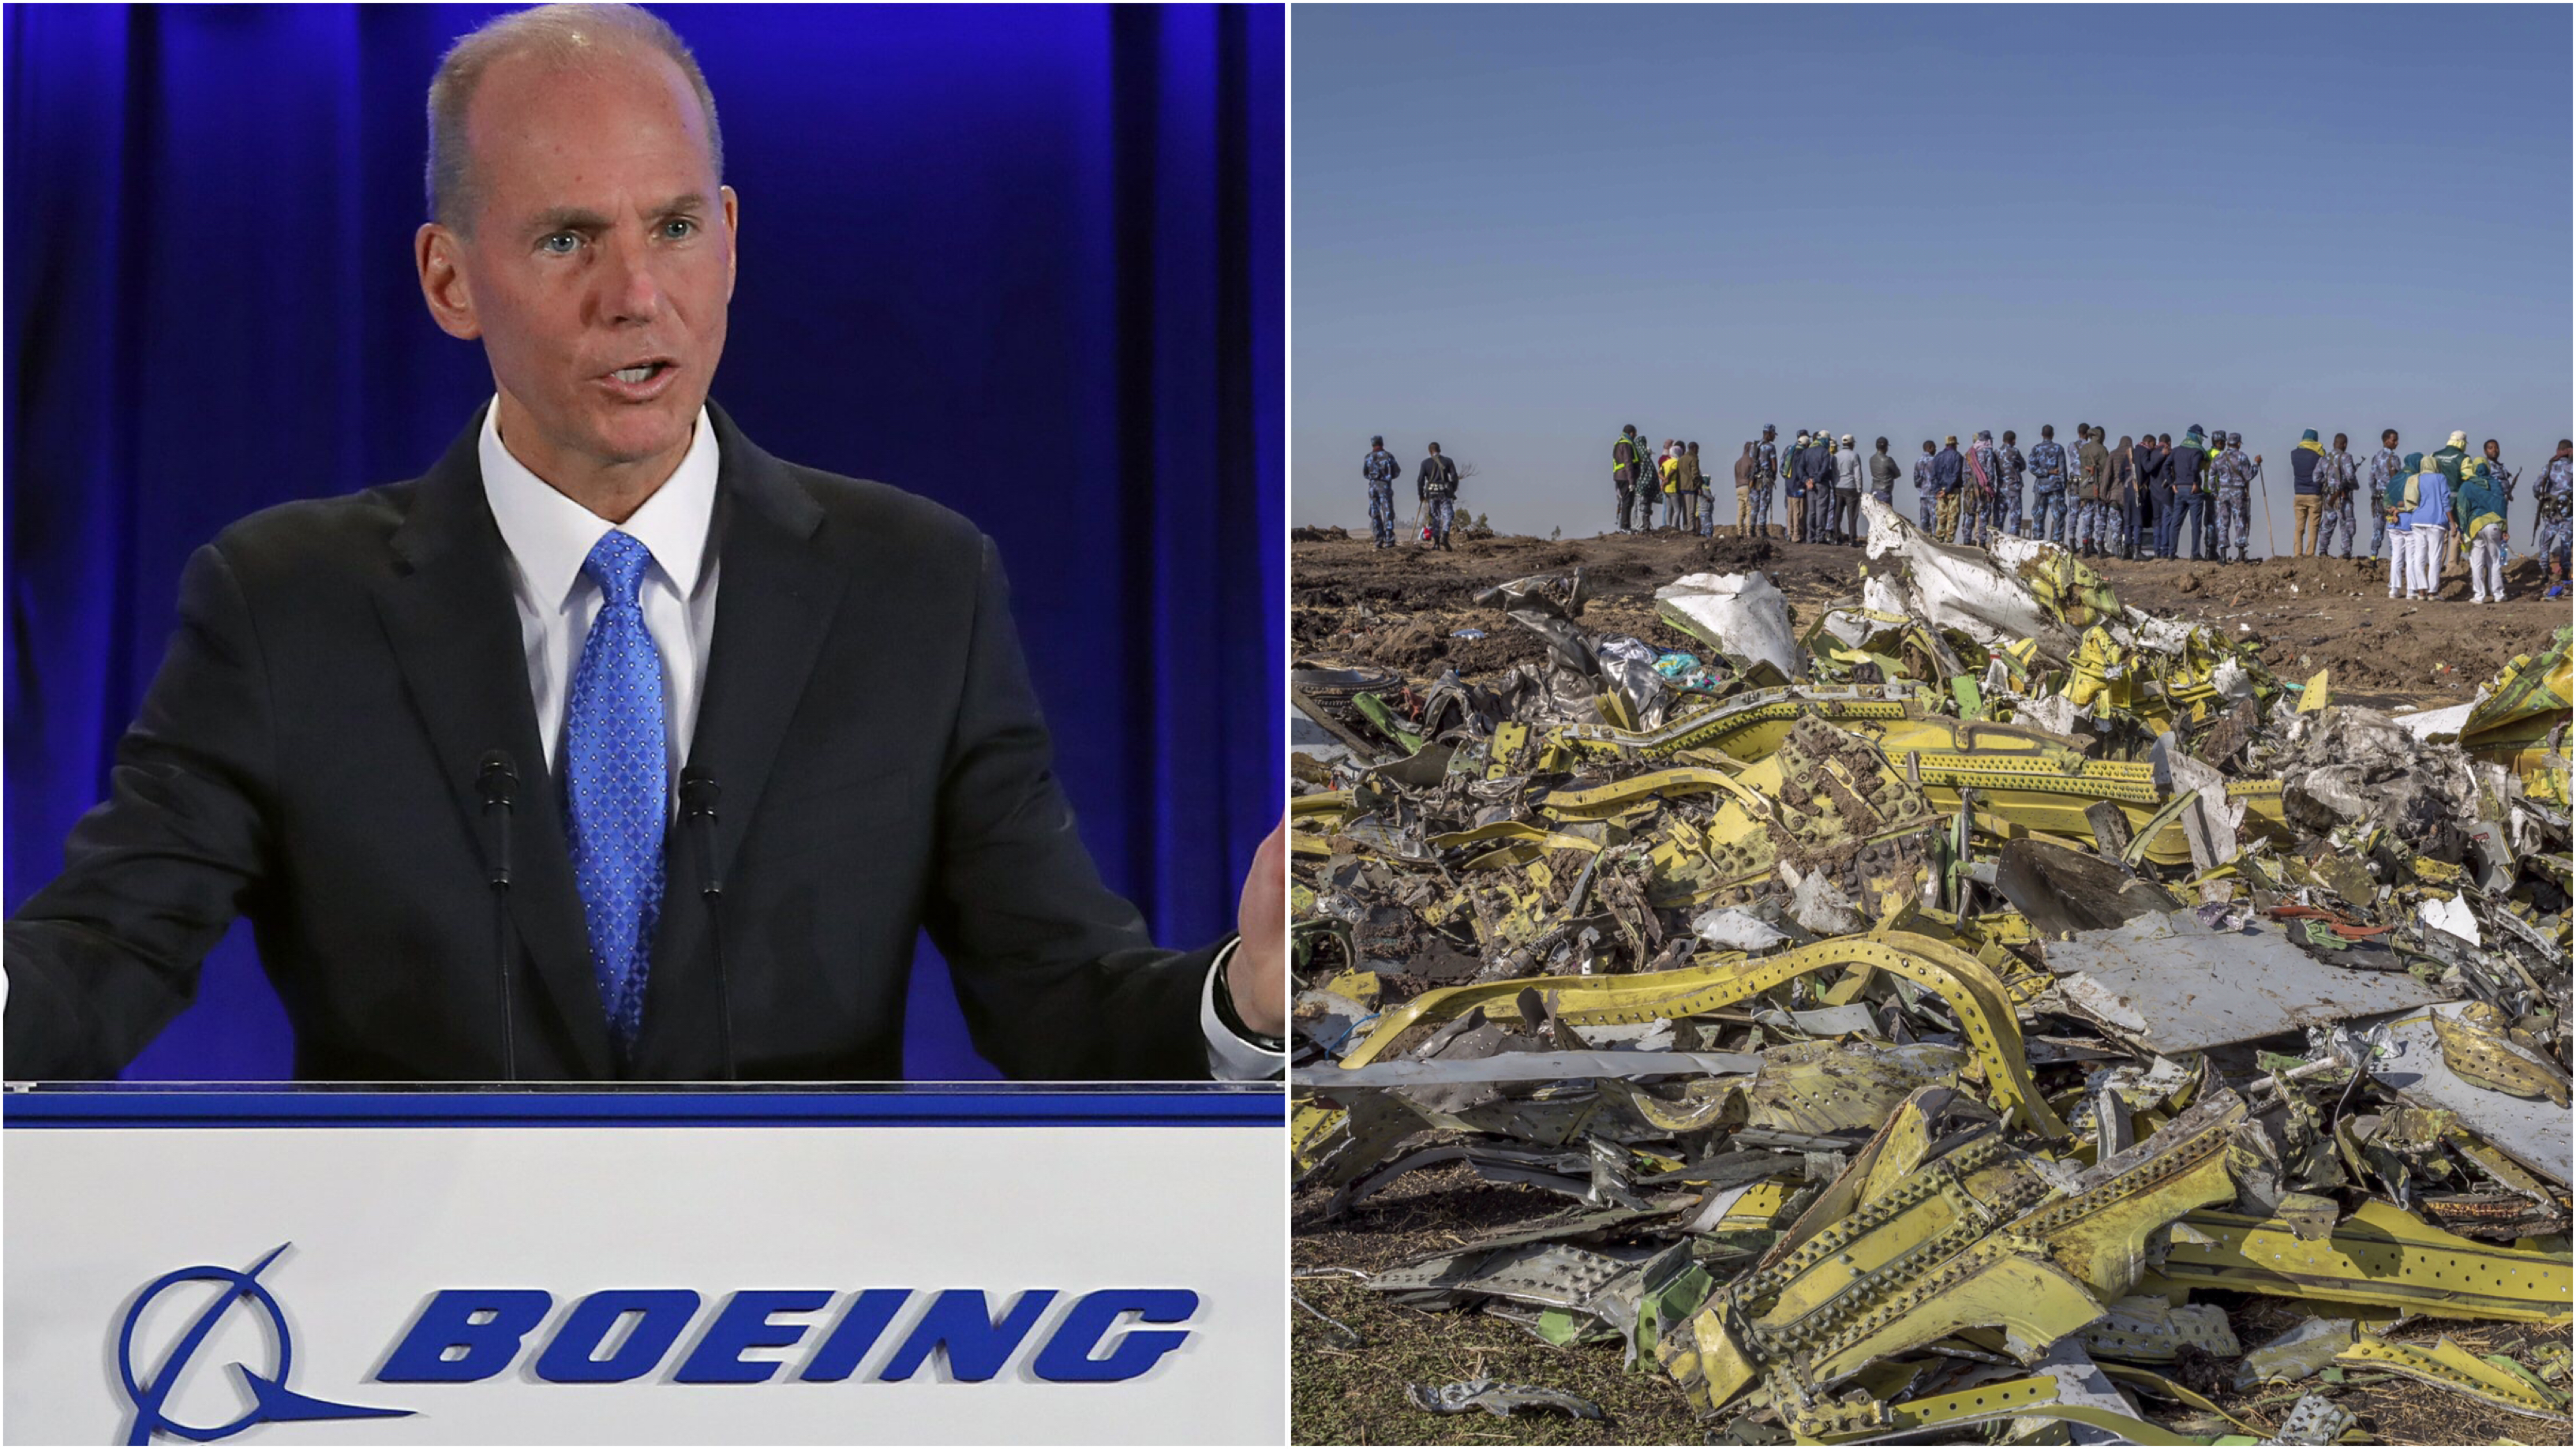 Boeing CEO Dennis Muilenburg has said the pilots involved in two deadly crashes did not 'completely' follow procedure.